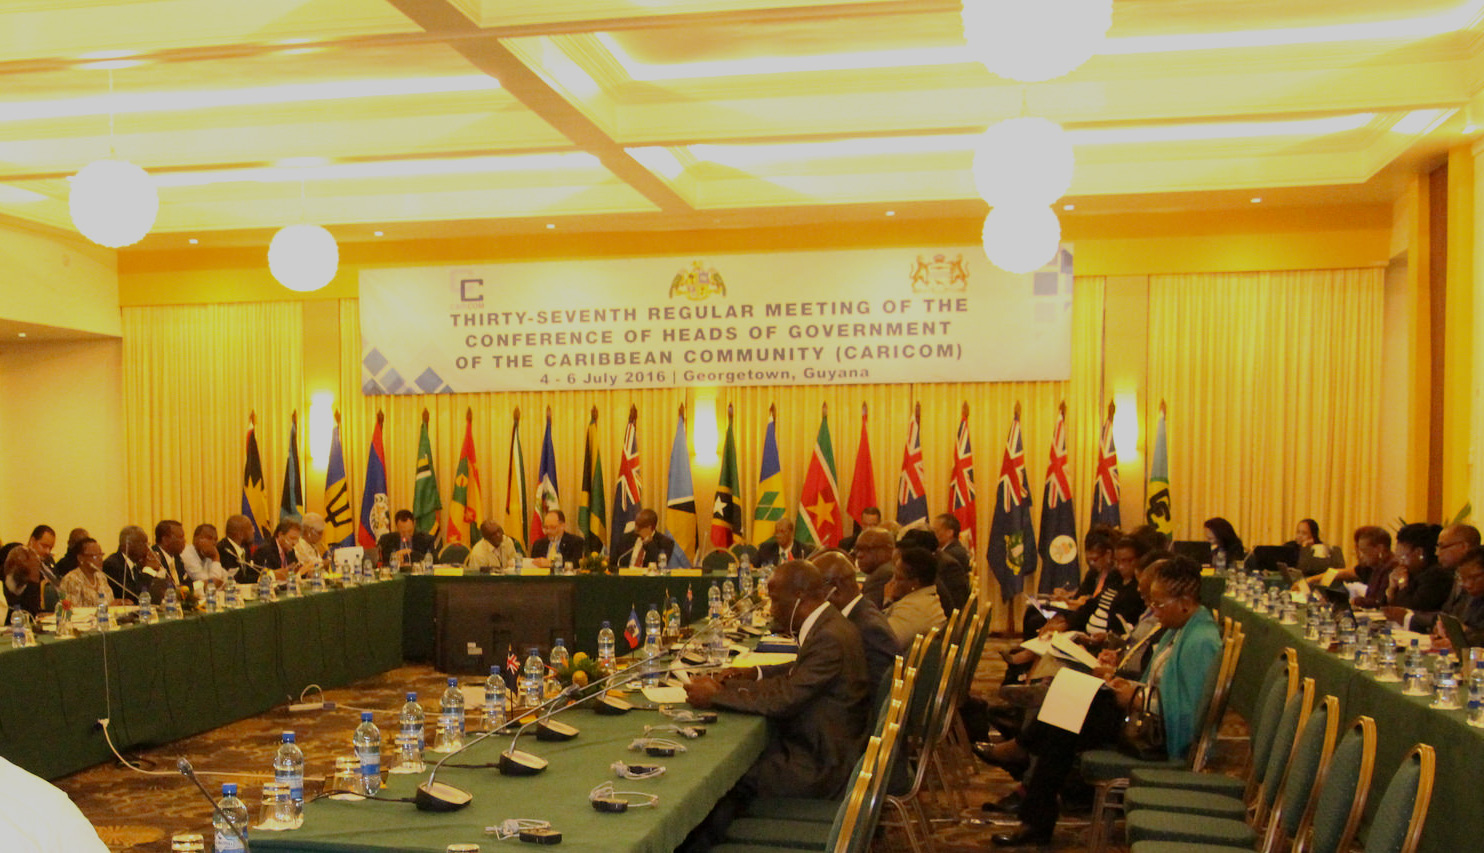 Photo of Security underpins deliberations at CARICOM Heads Conference